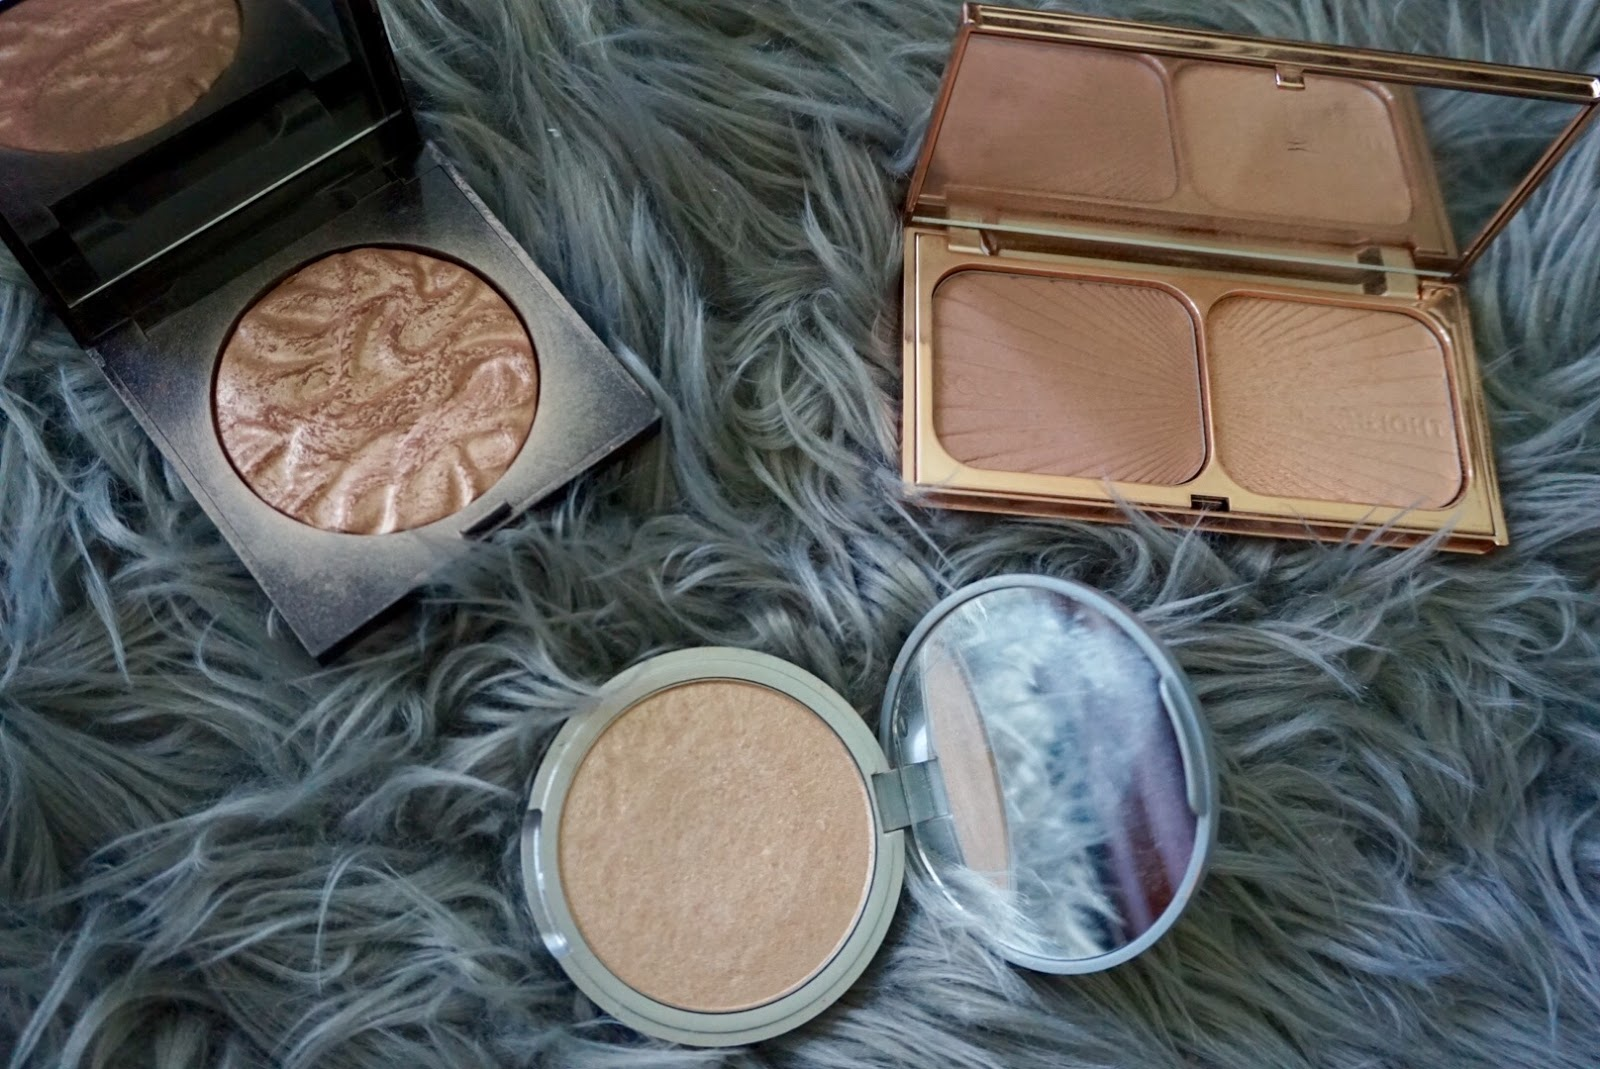 Charlotte Tilbury Filmstar Bronze and Glow review Mary Loumanizer Laura Mercier